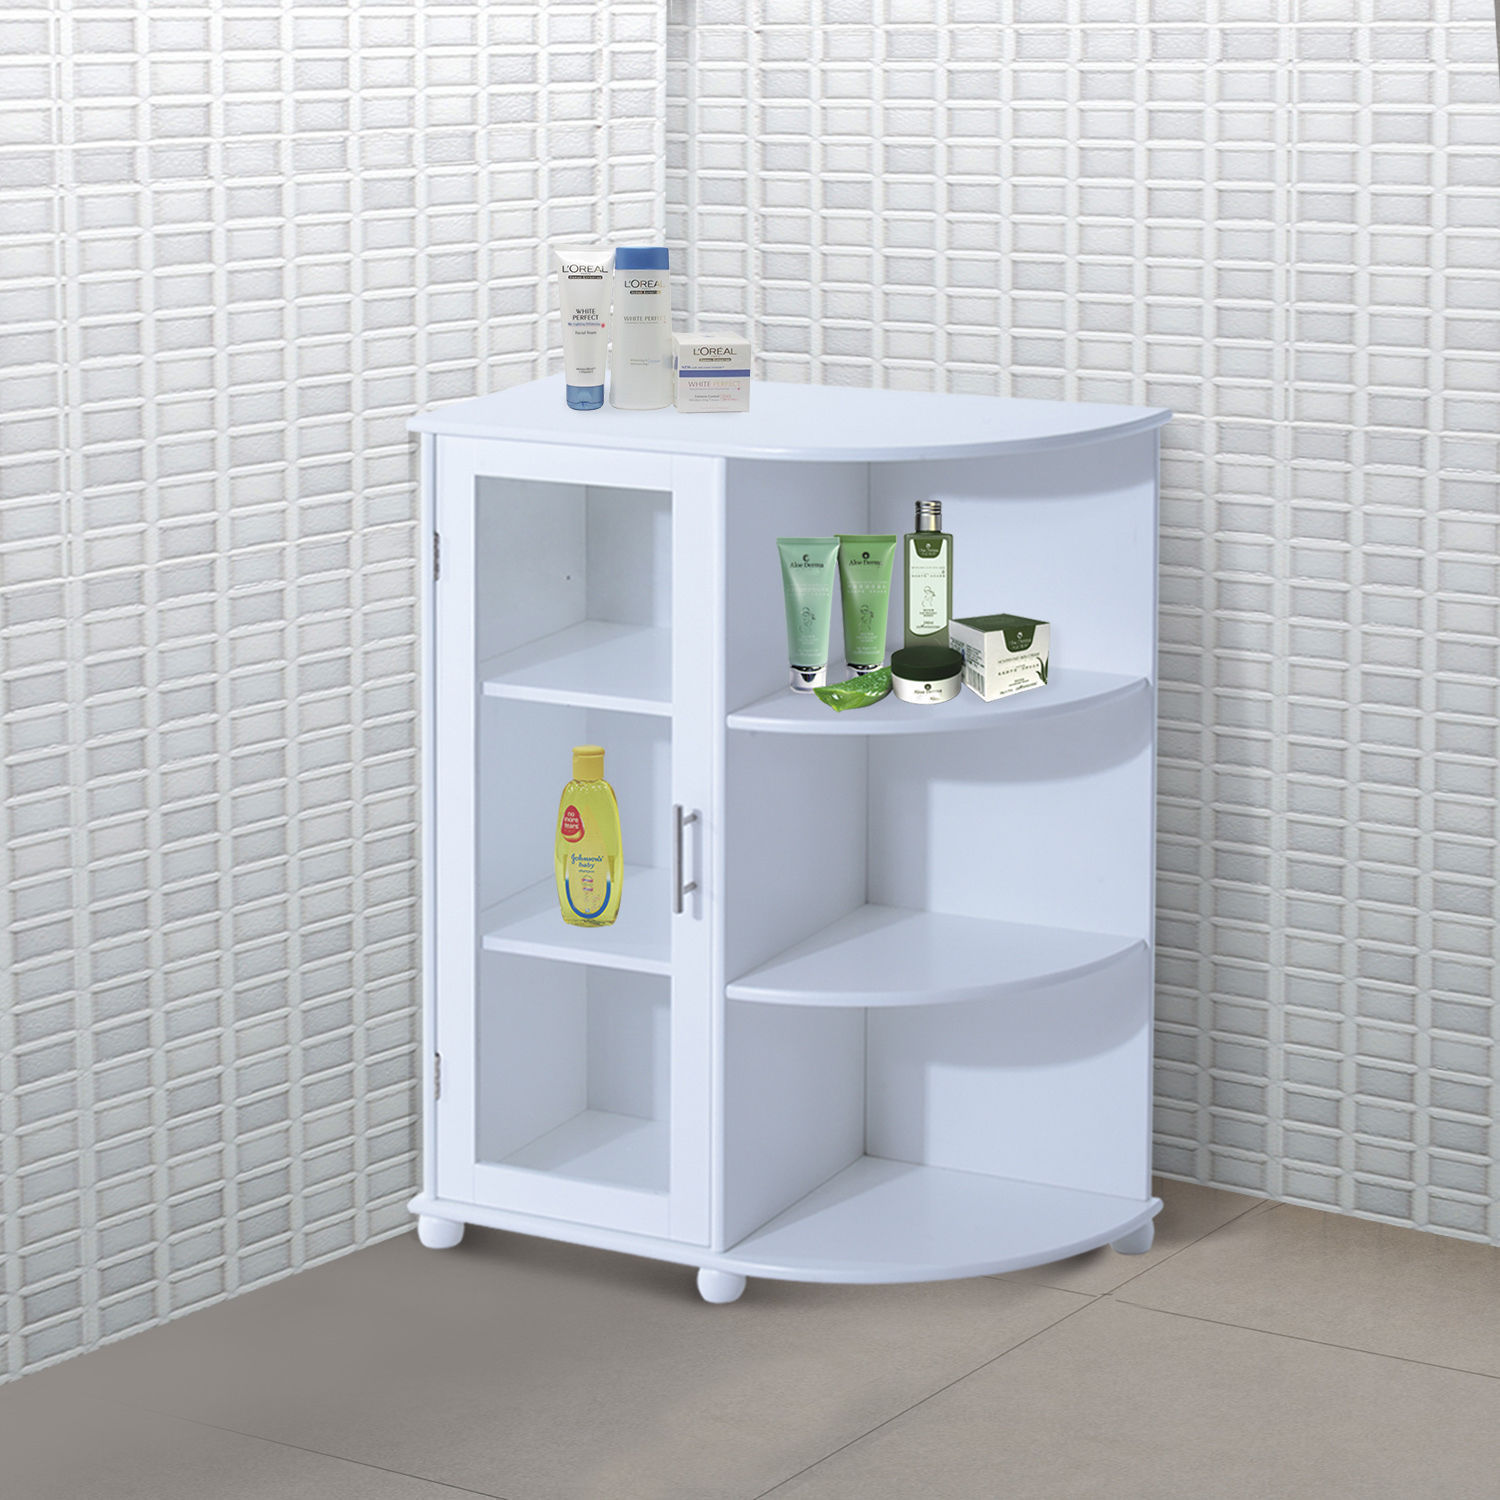 cabinets elegant cabinet hamper of design bathroom with storage tall modern